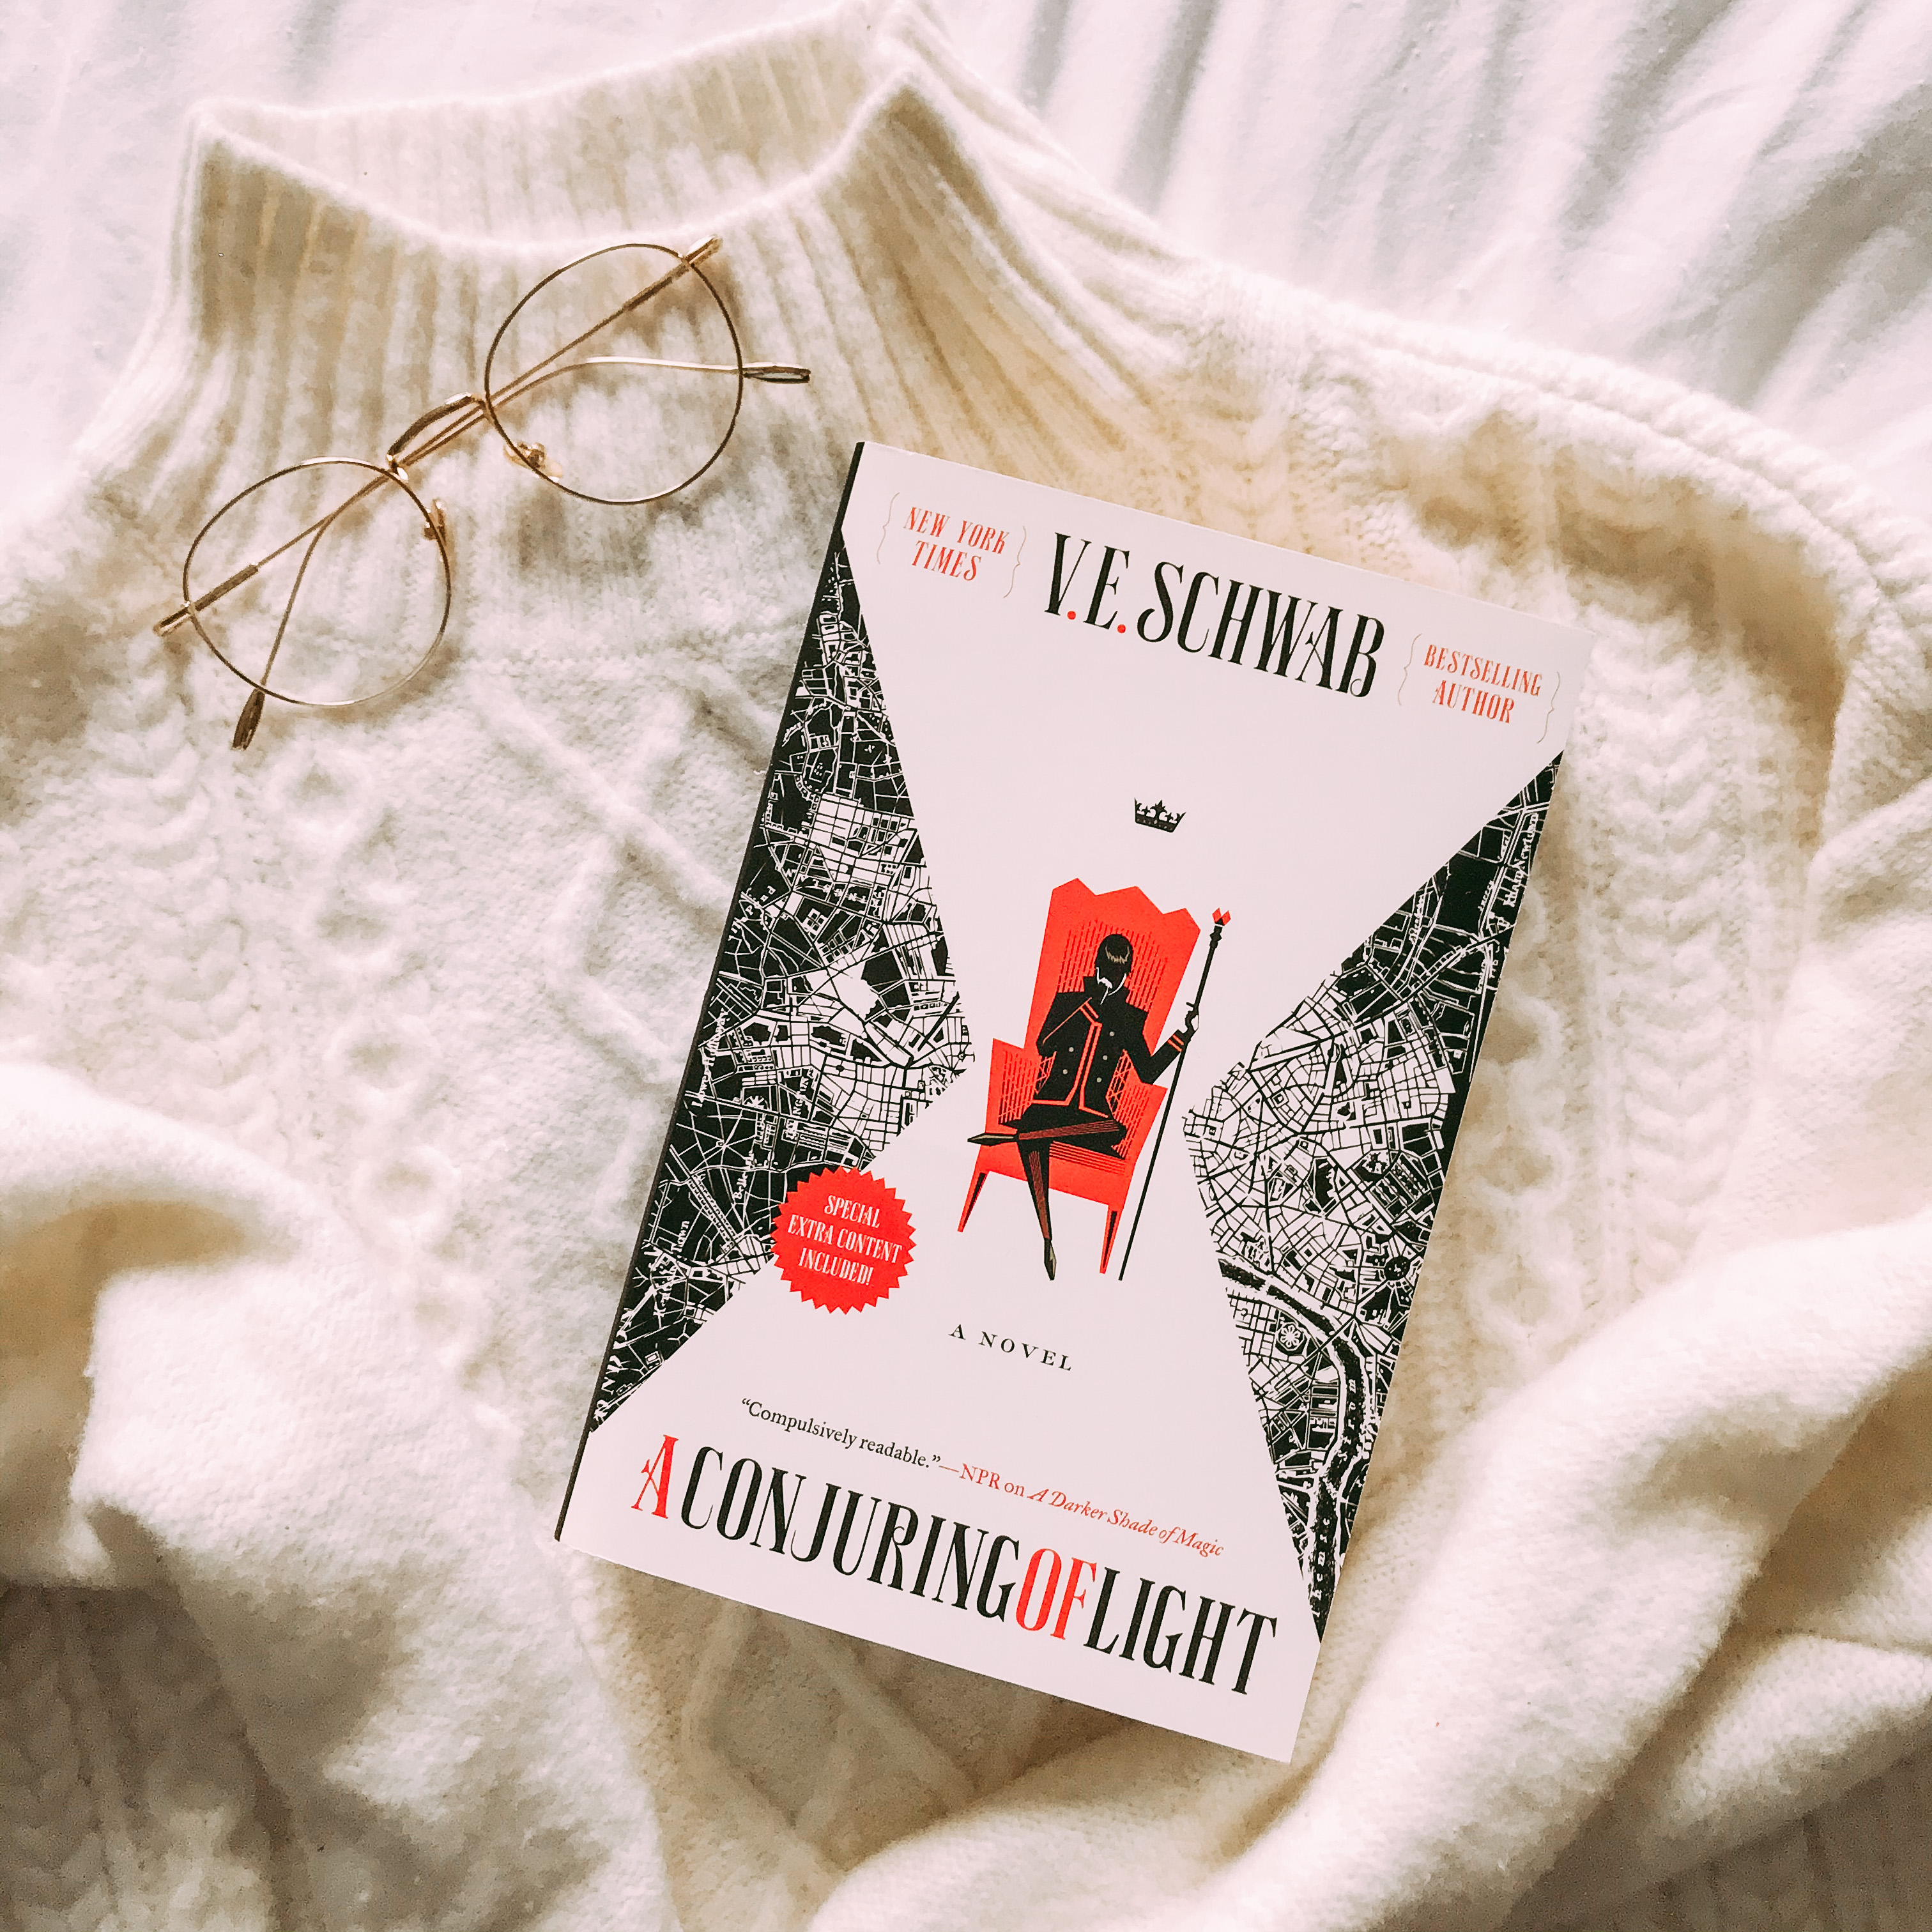 a conjuring of light book by ve schwab with a white turtleneck sweater and gold rimmed glasses